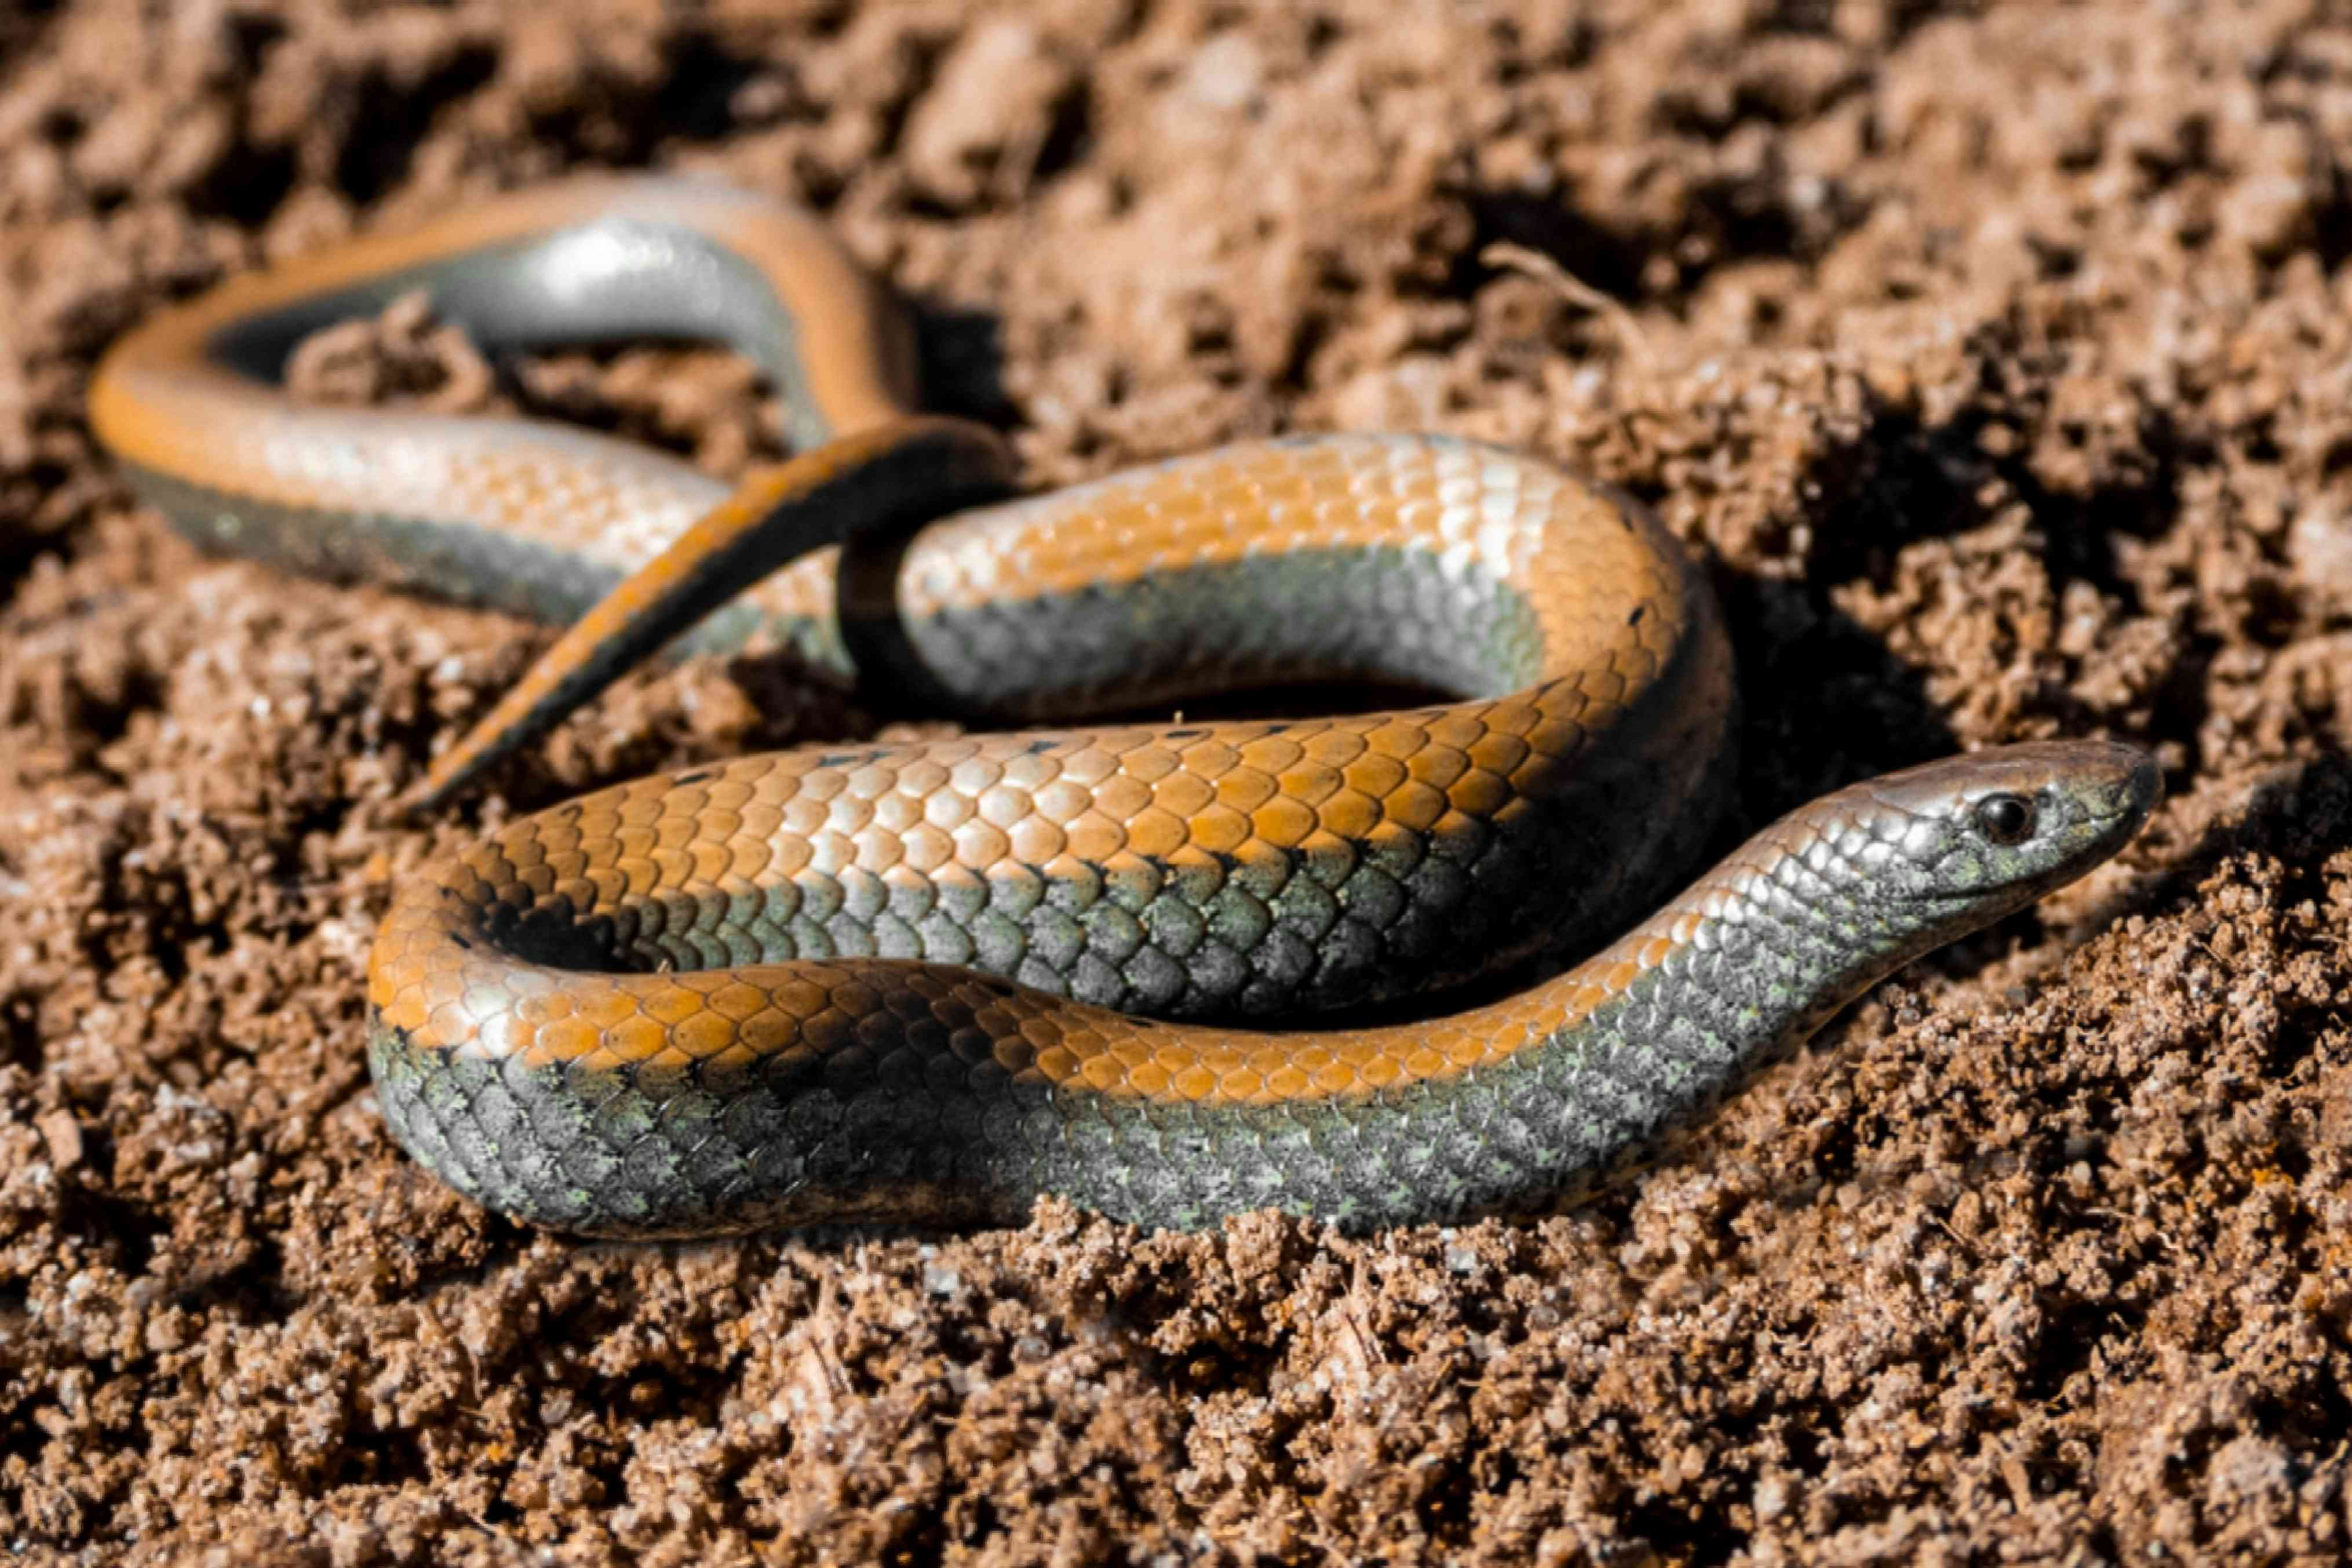 allowing good snakes to stay